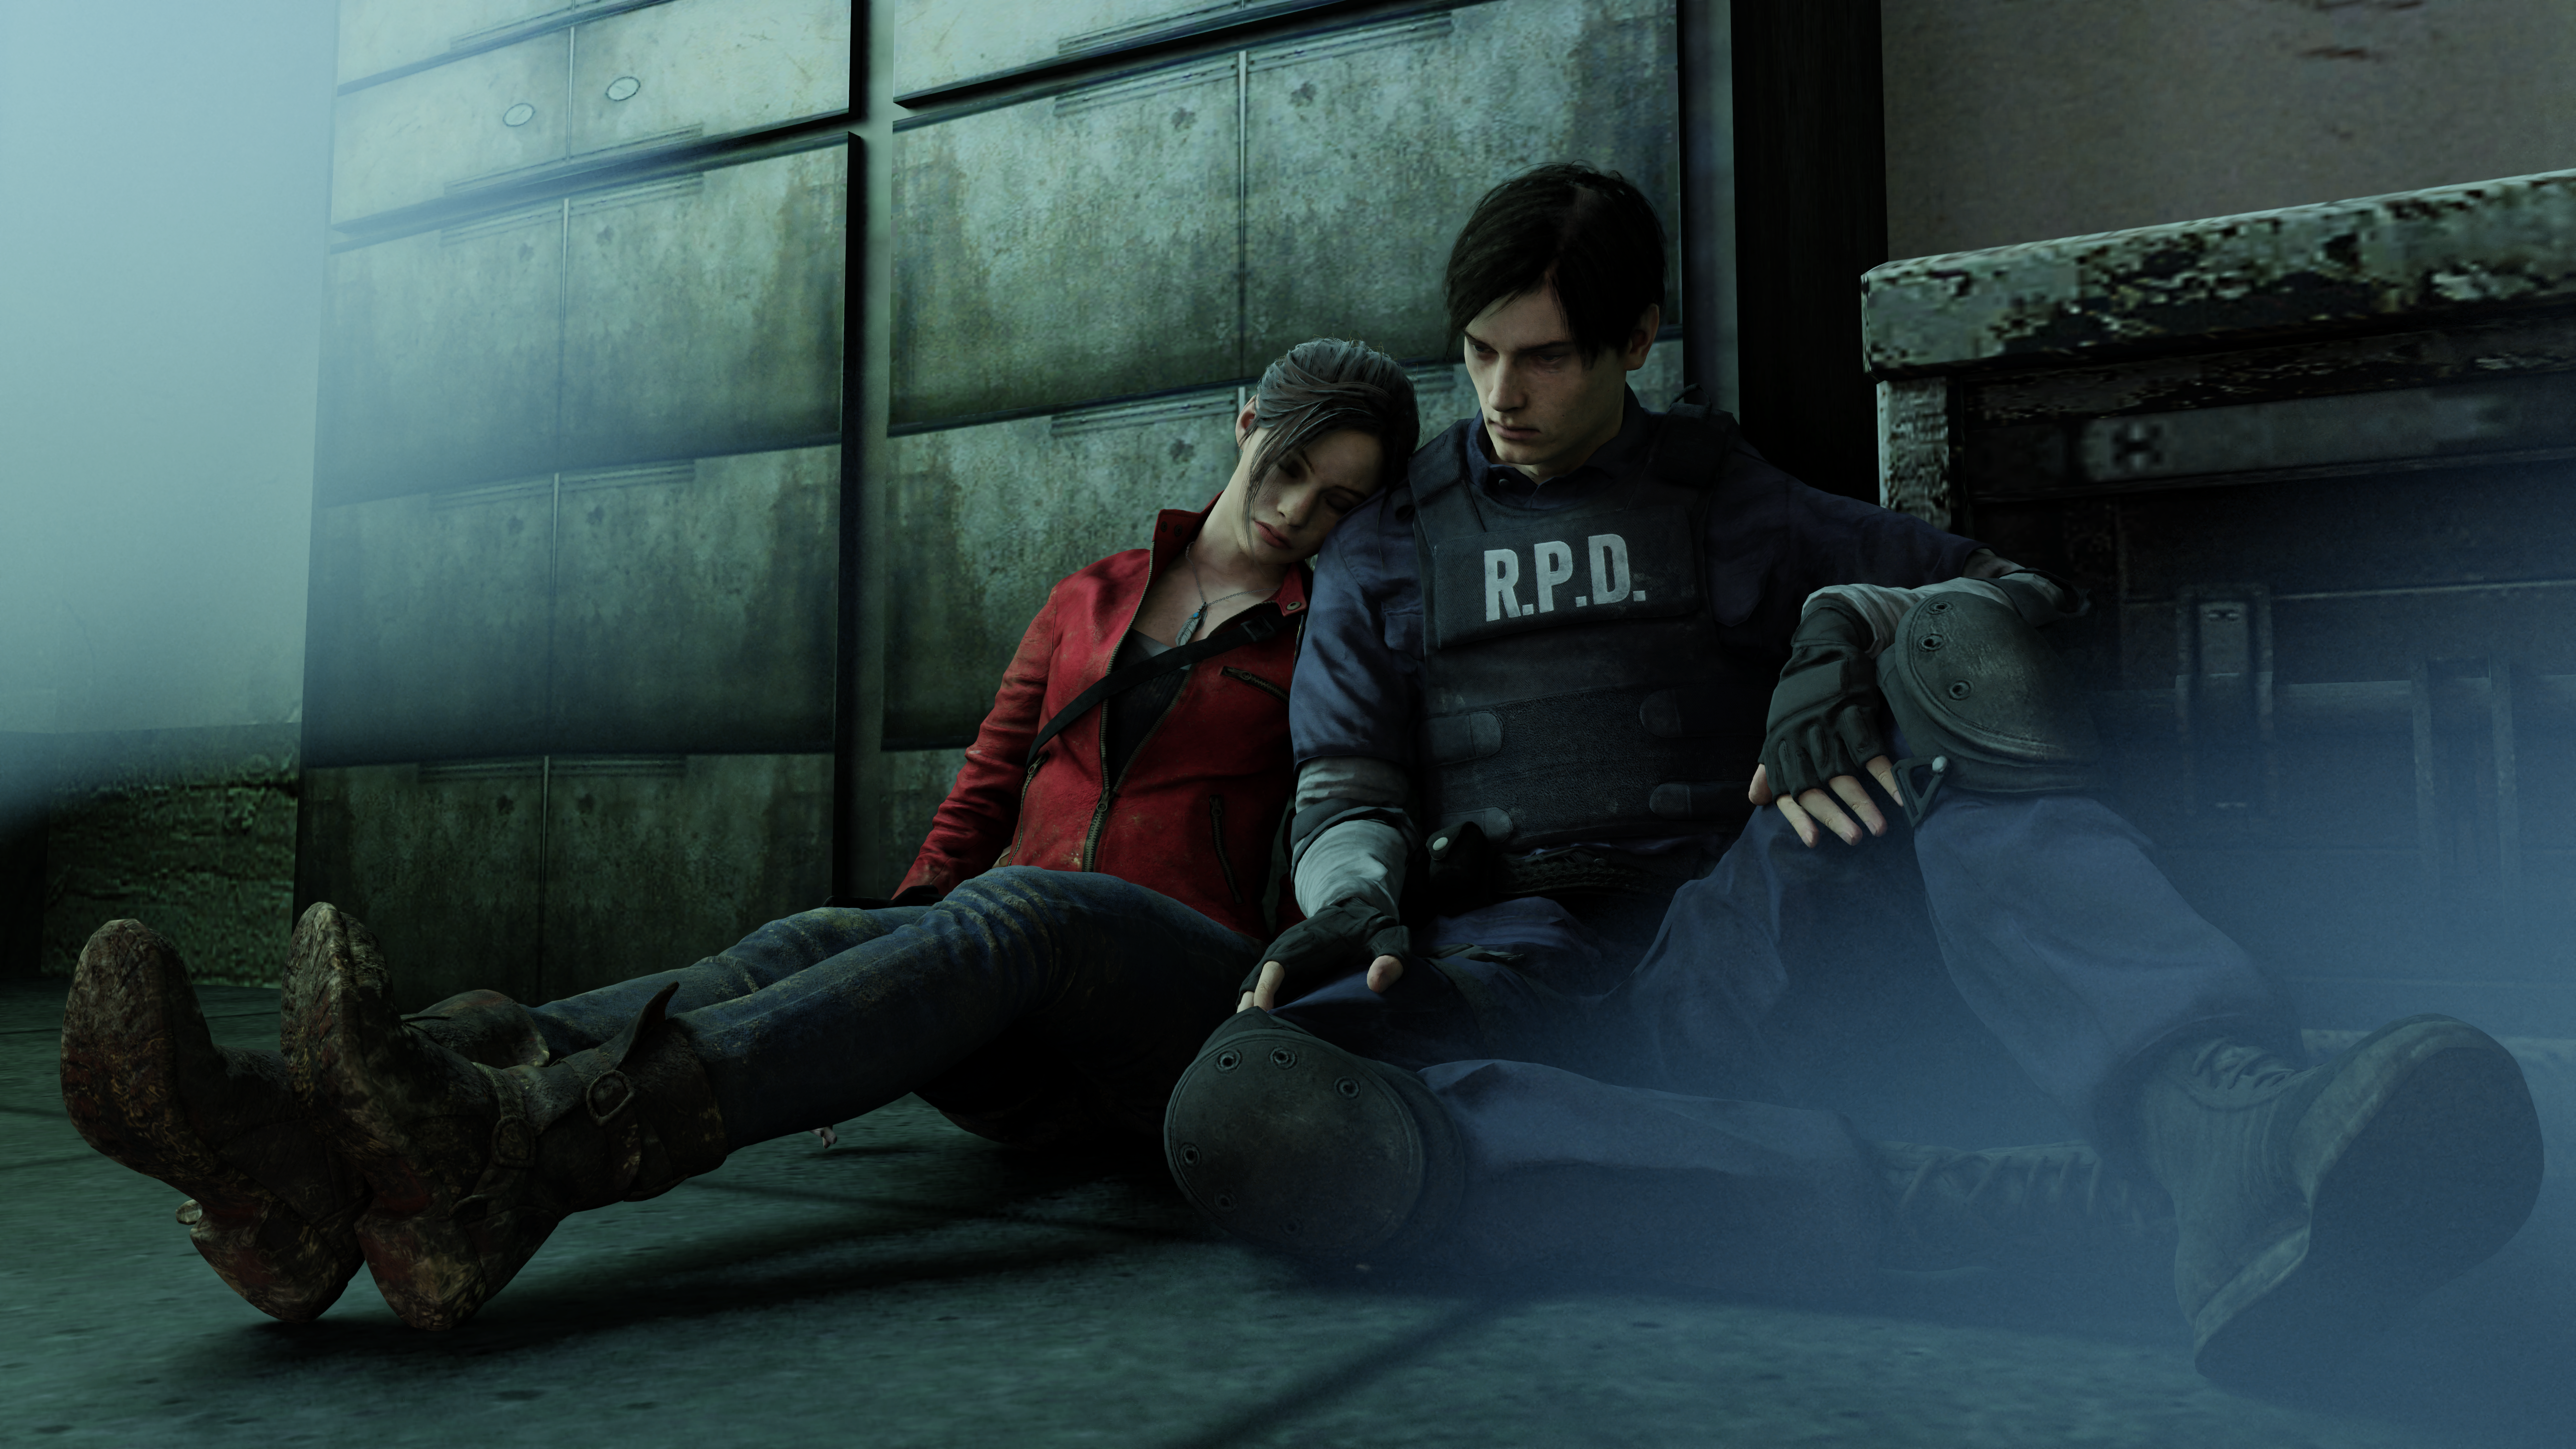 A Moment Of Safety Resident Evil 2 Remake By Necrocainalx On Deviantart